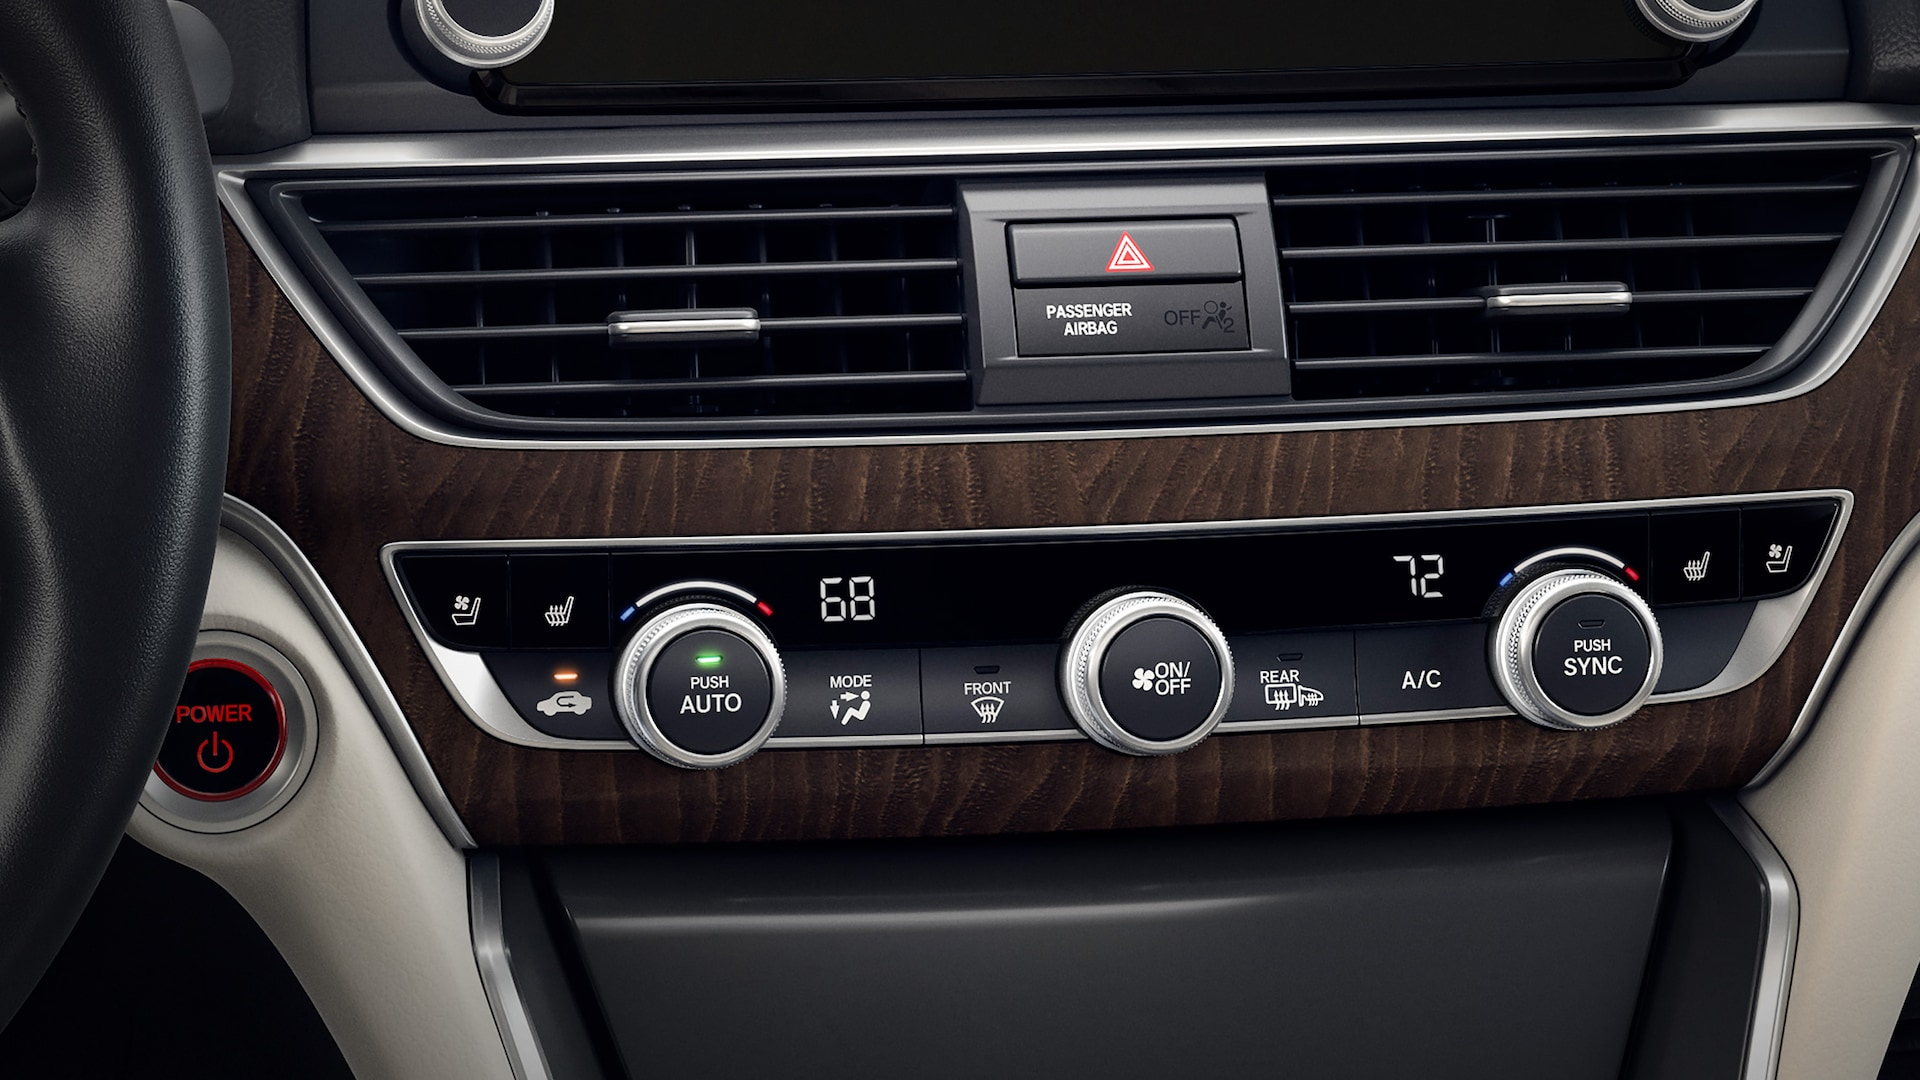 Dual-zone automatic climate control detail in the 2020 Honda Accord Hybrid.